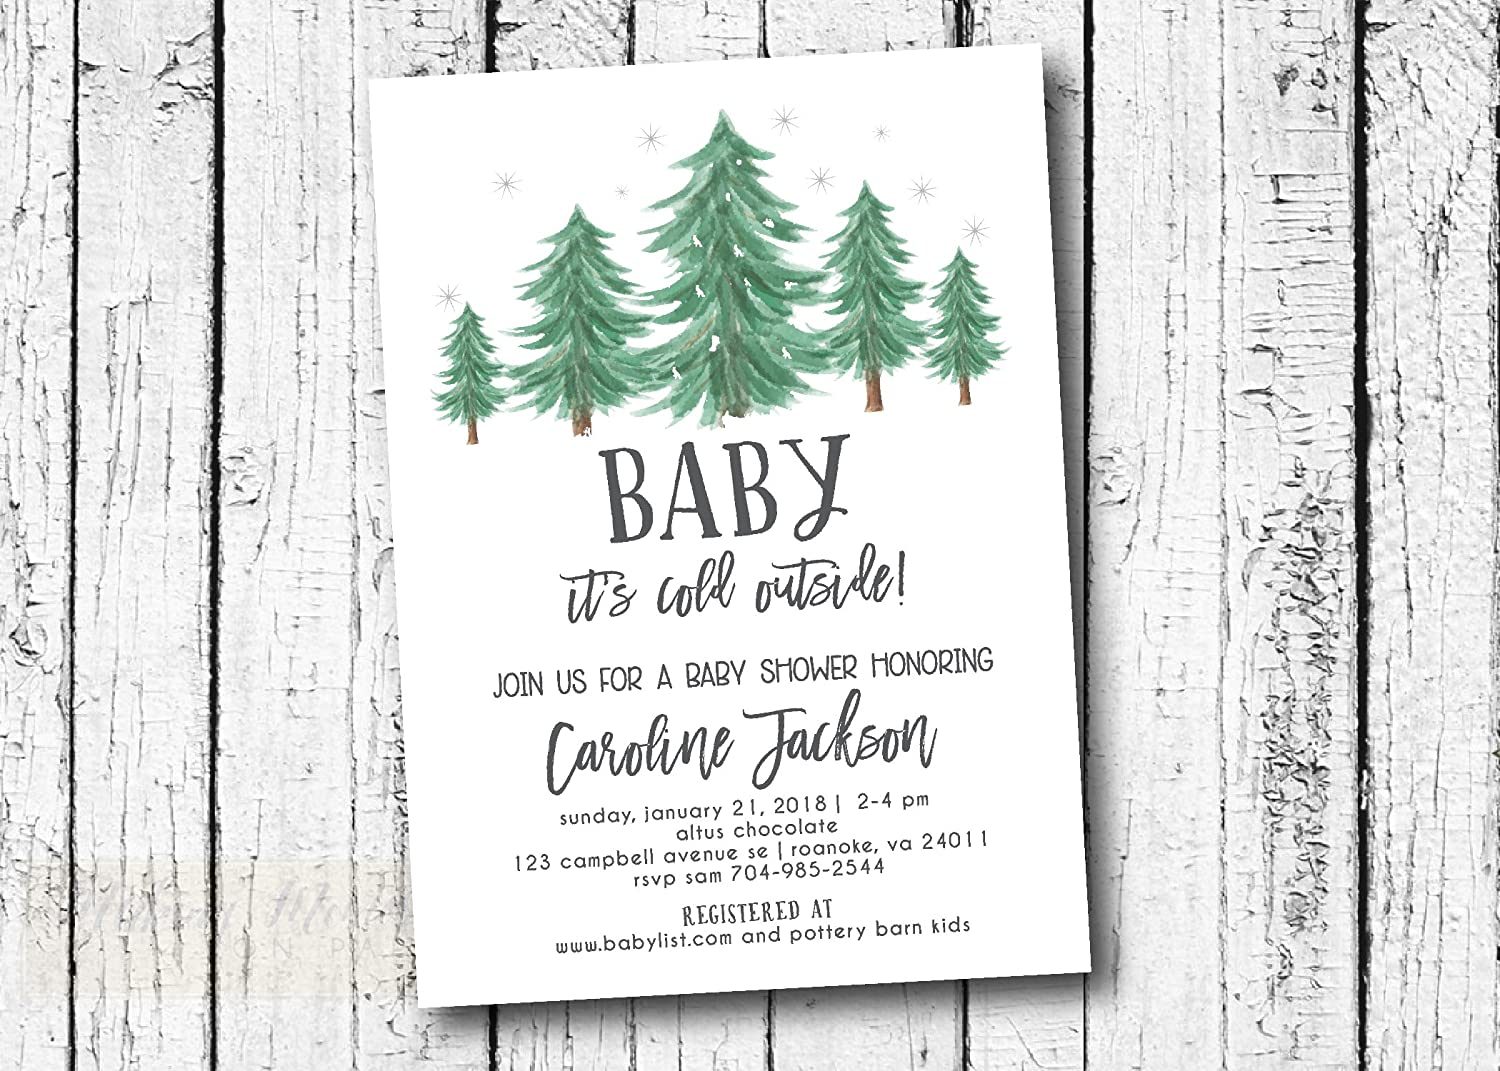 Winter Baby Shower Invitation, evergreen, snow, baby its cold outside, watercolor, Rustic, Christmas, invite, invitation